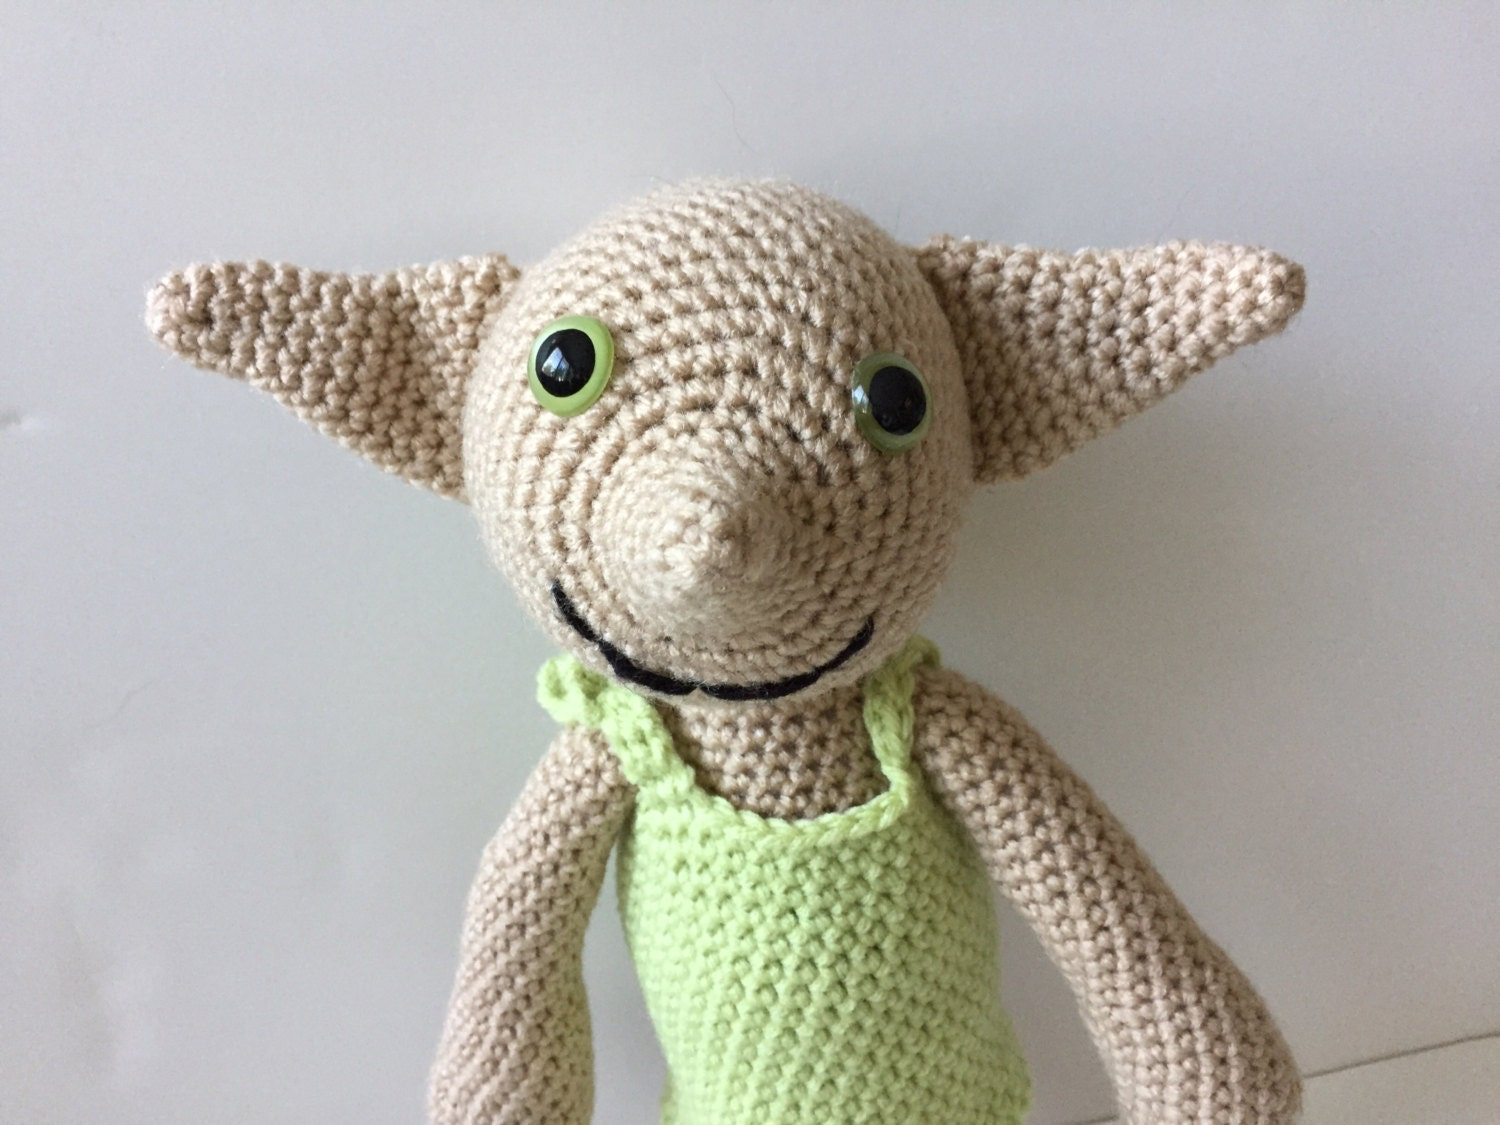 Dobby Harry Potter Amigurumi : Dobby-Puppe aus Harry Potter Crochet Amigurumi